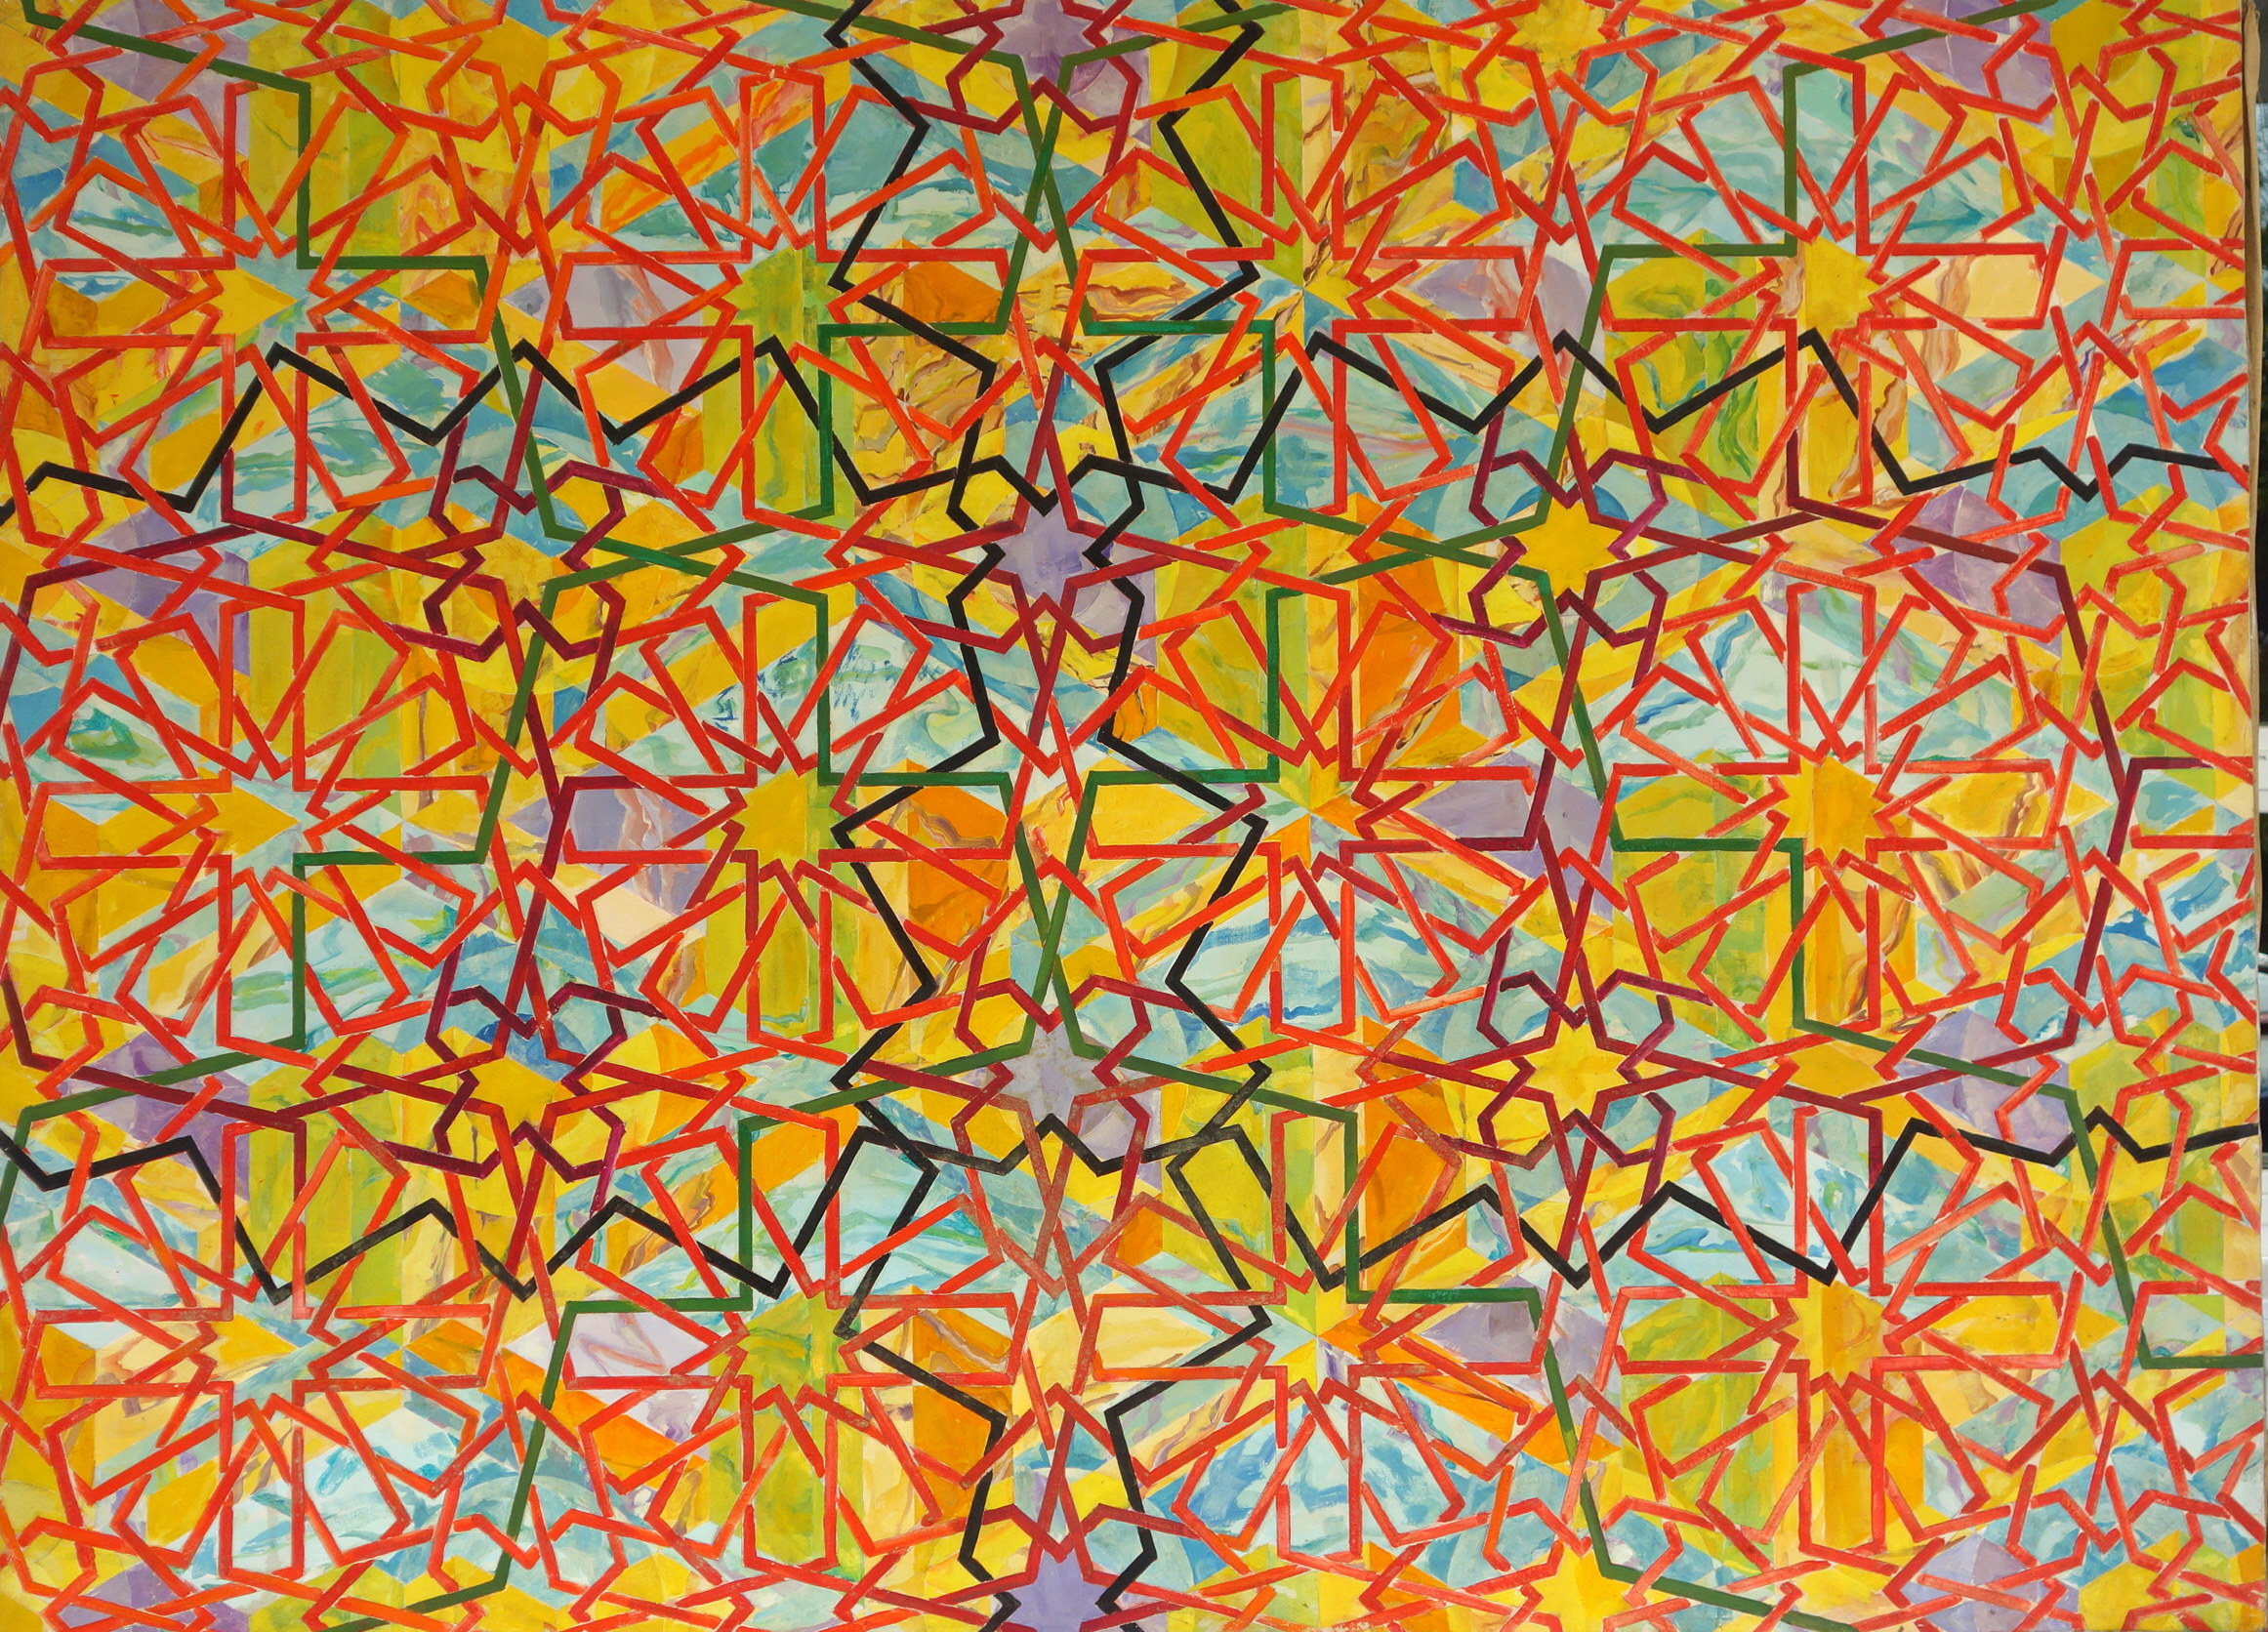 1978, oils on canvass. This is about 4 feet by 6 feet. There are a few things going on.  There are the lines that form patterns and behind it there are colors which form other patterns.